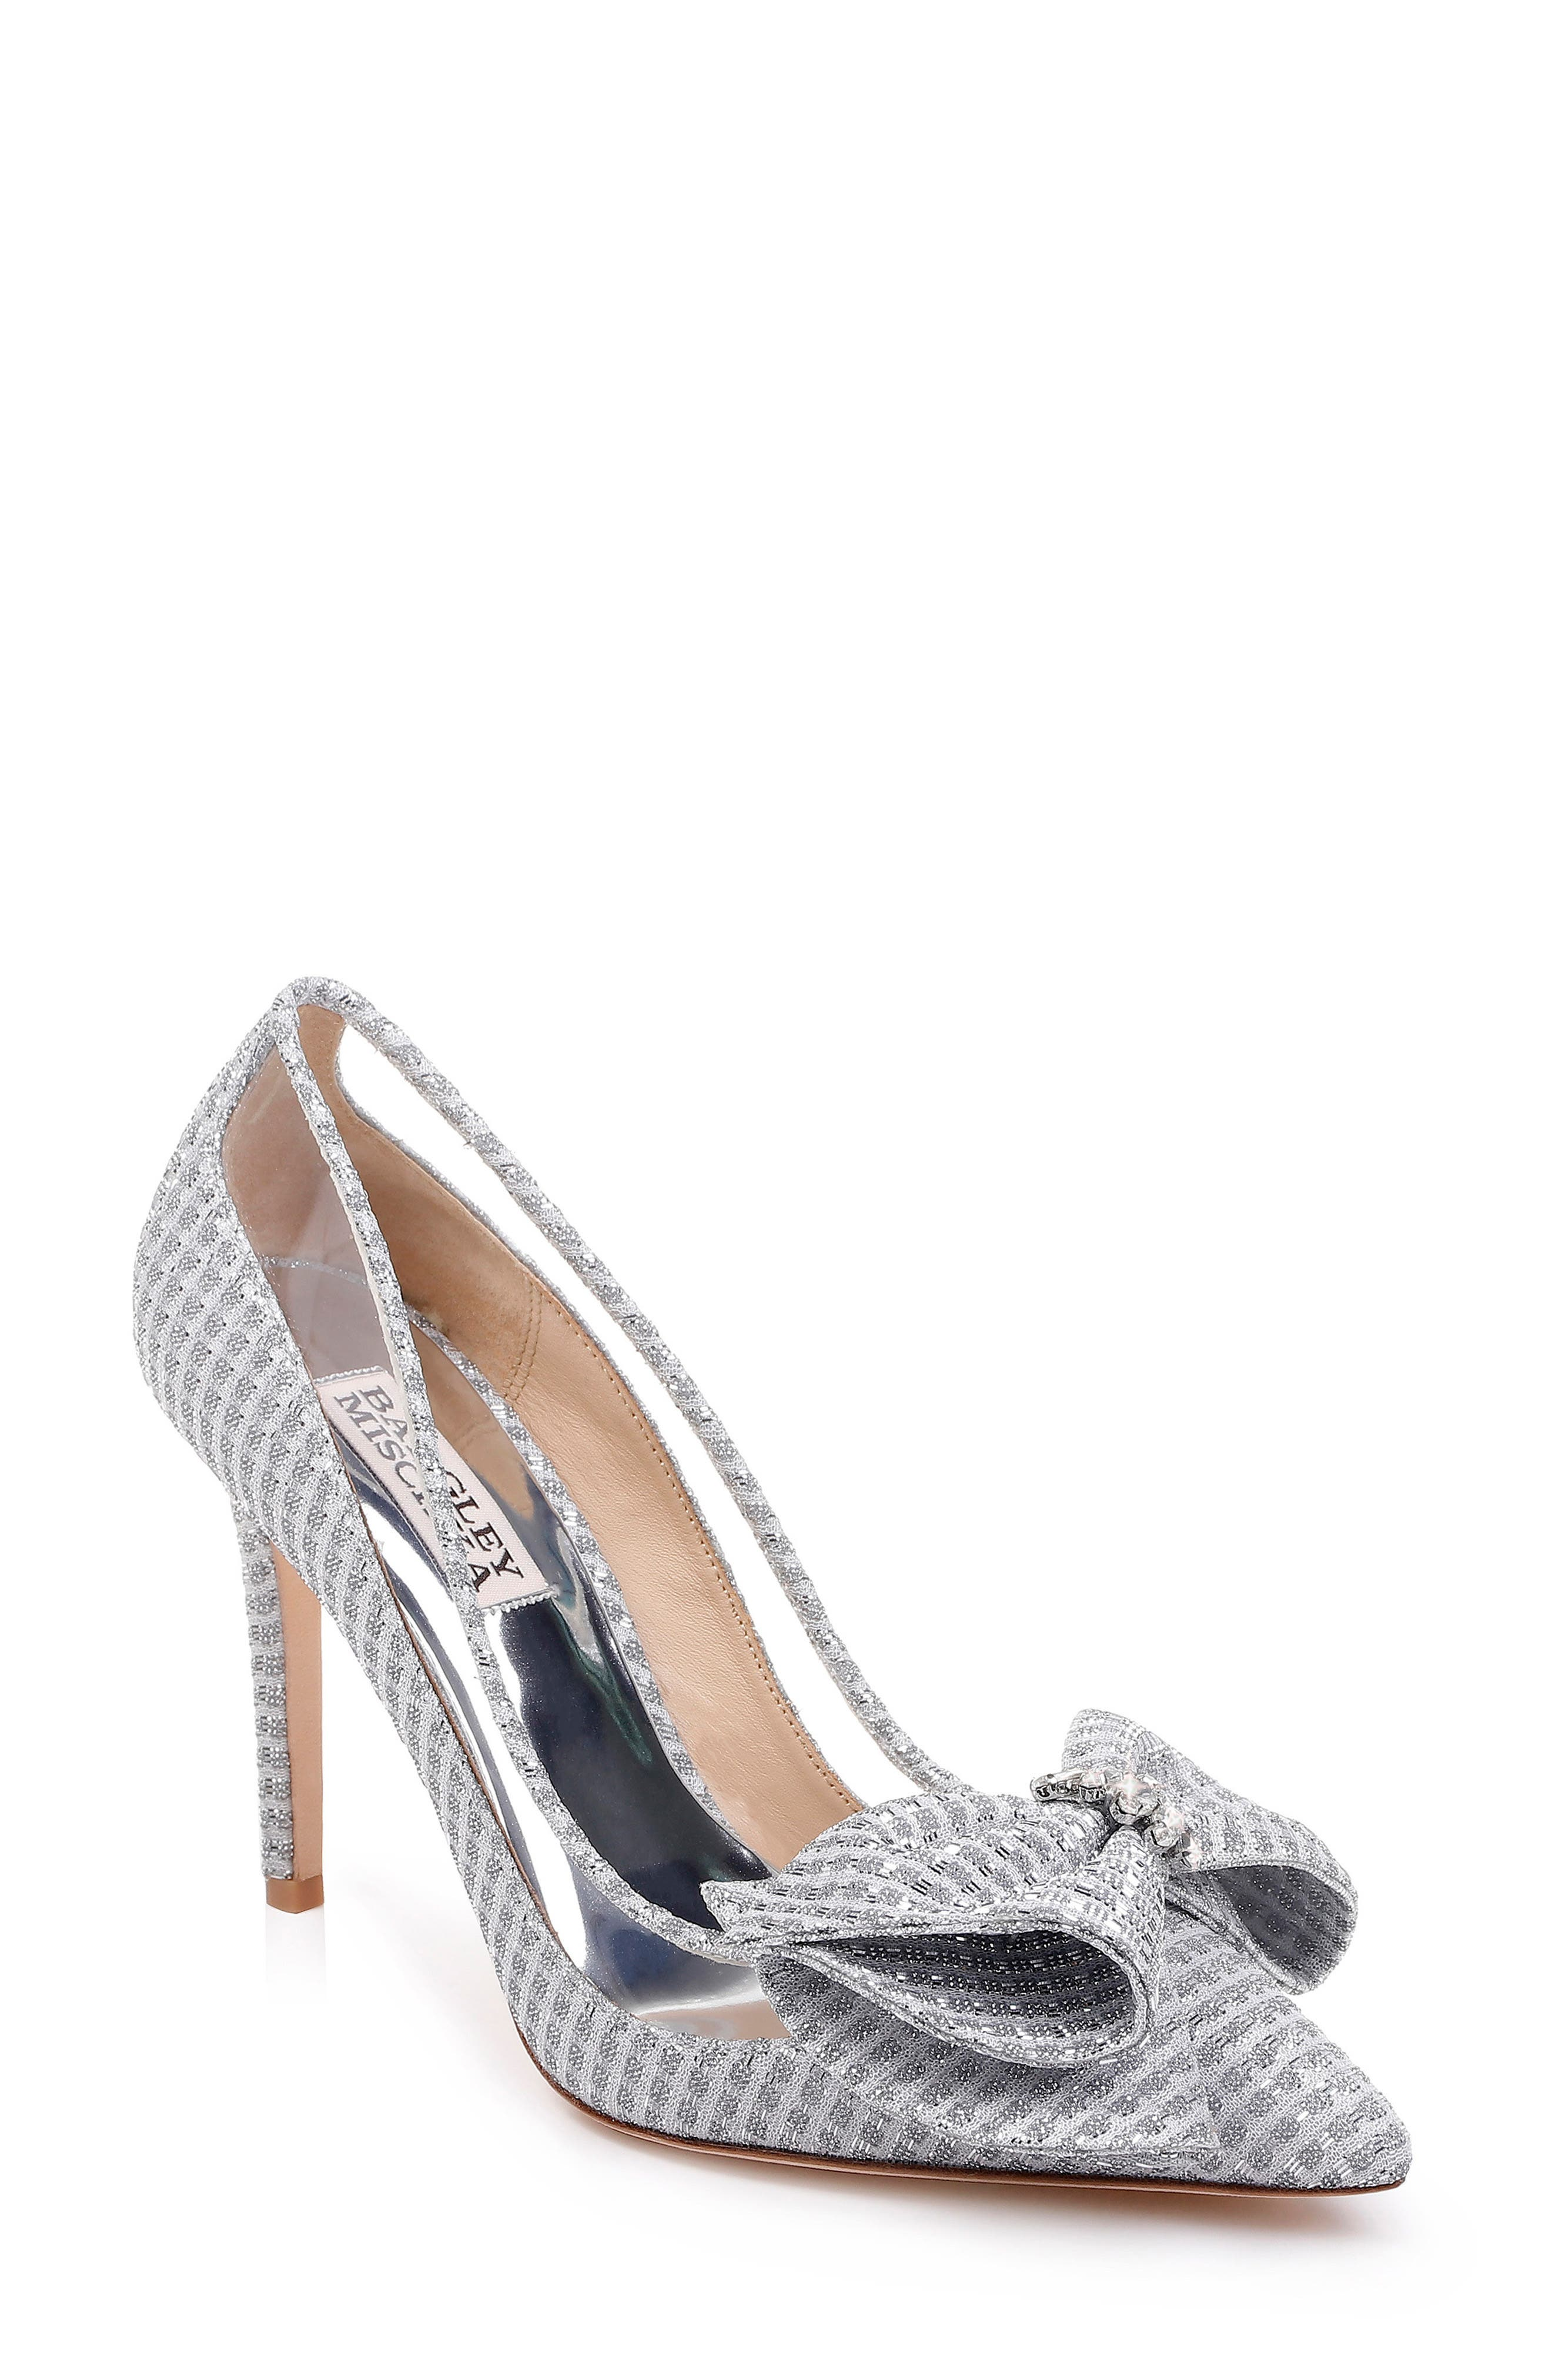 BADGLEY MISCHKA COLLECTION Badgley Mischka Frances Bow Pump, Main, color, SILVER GLITTER FABRIC